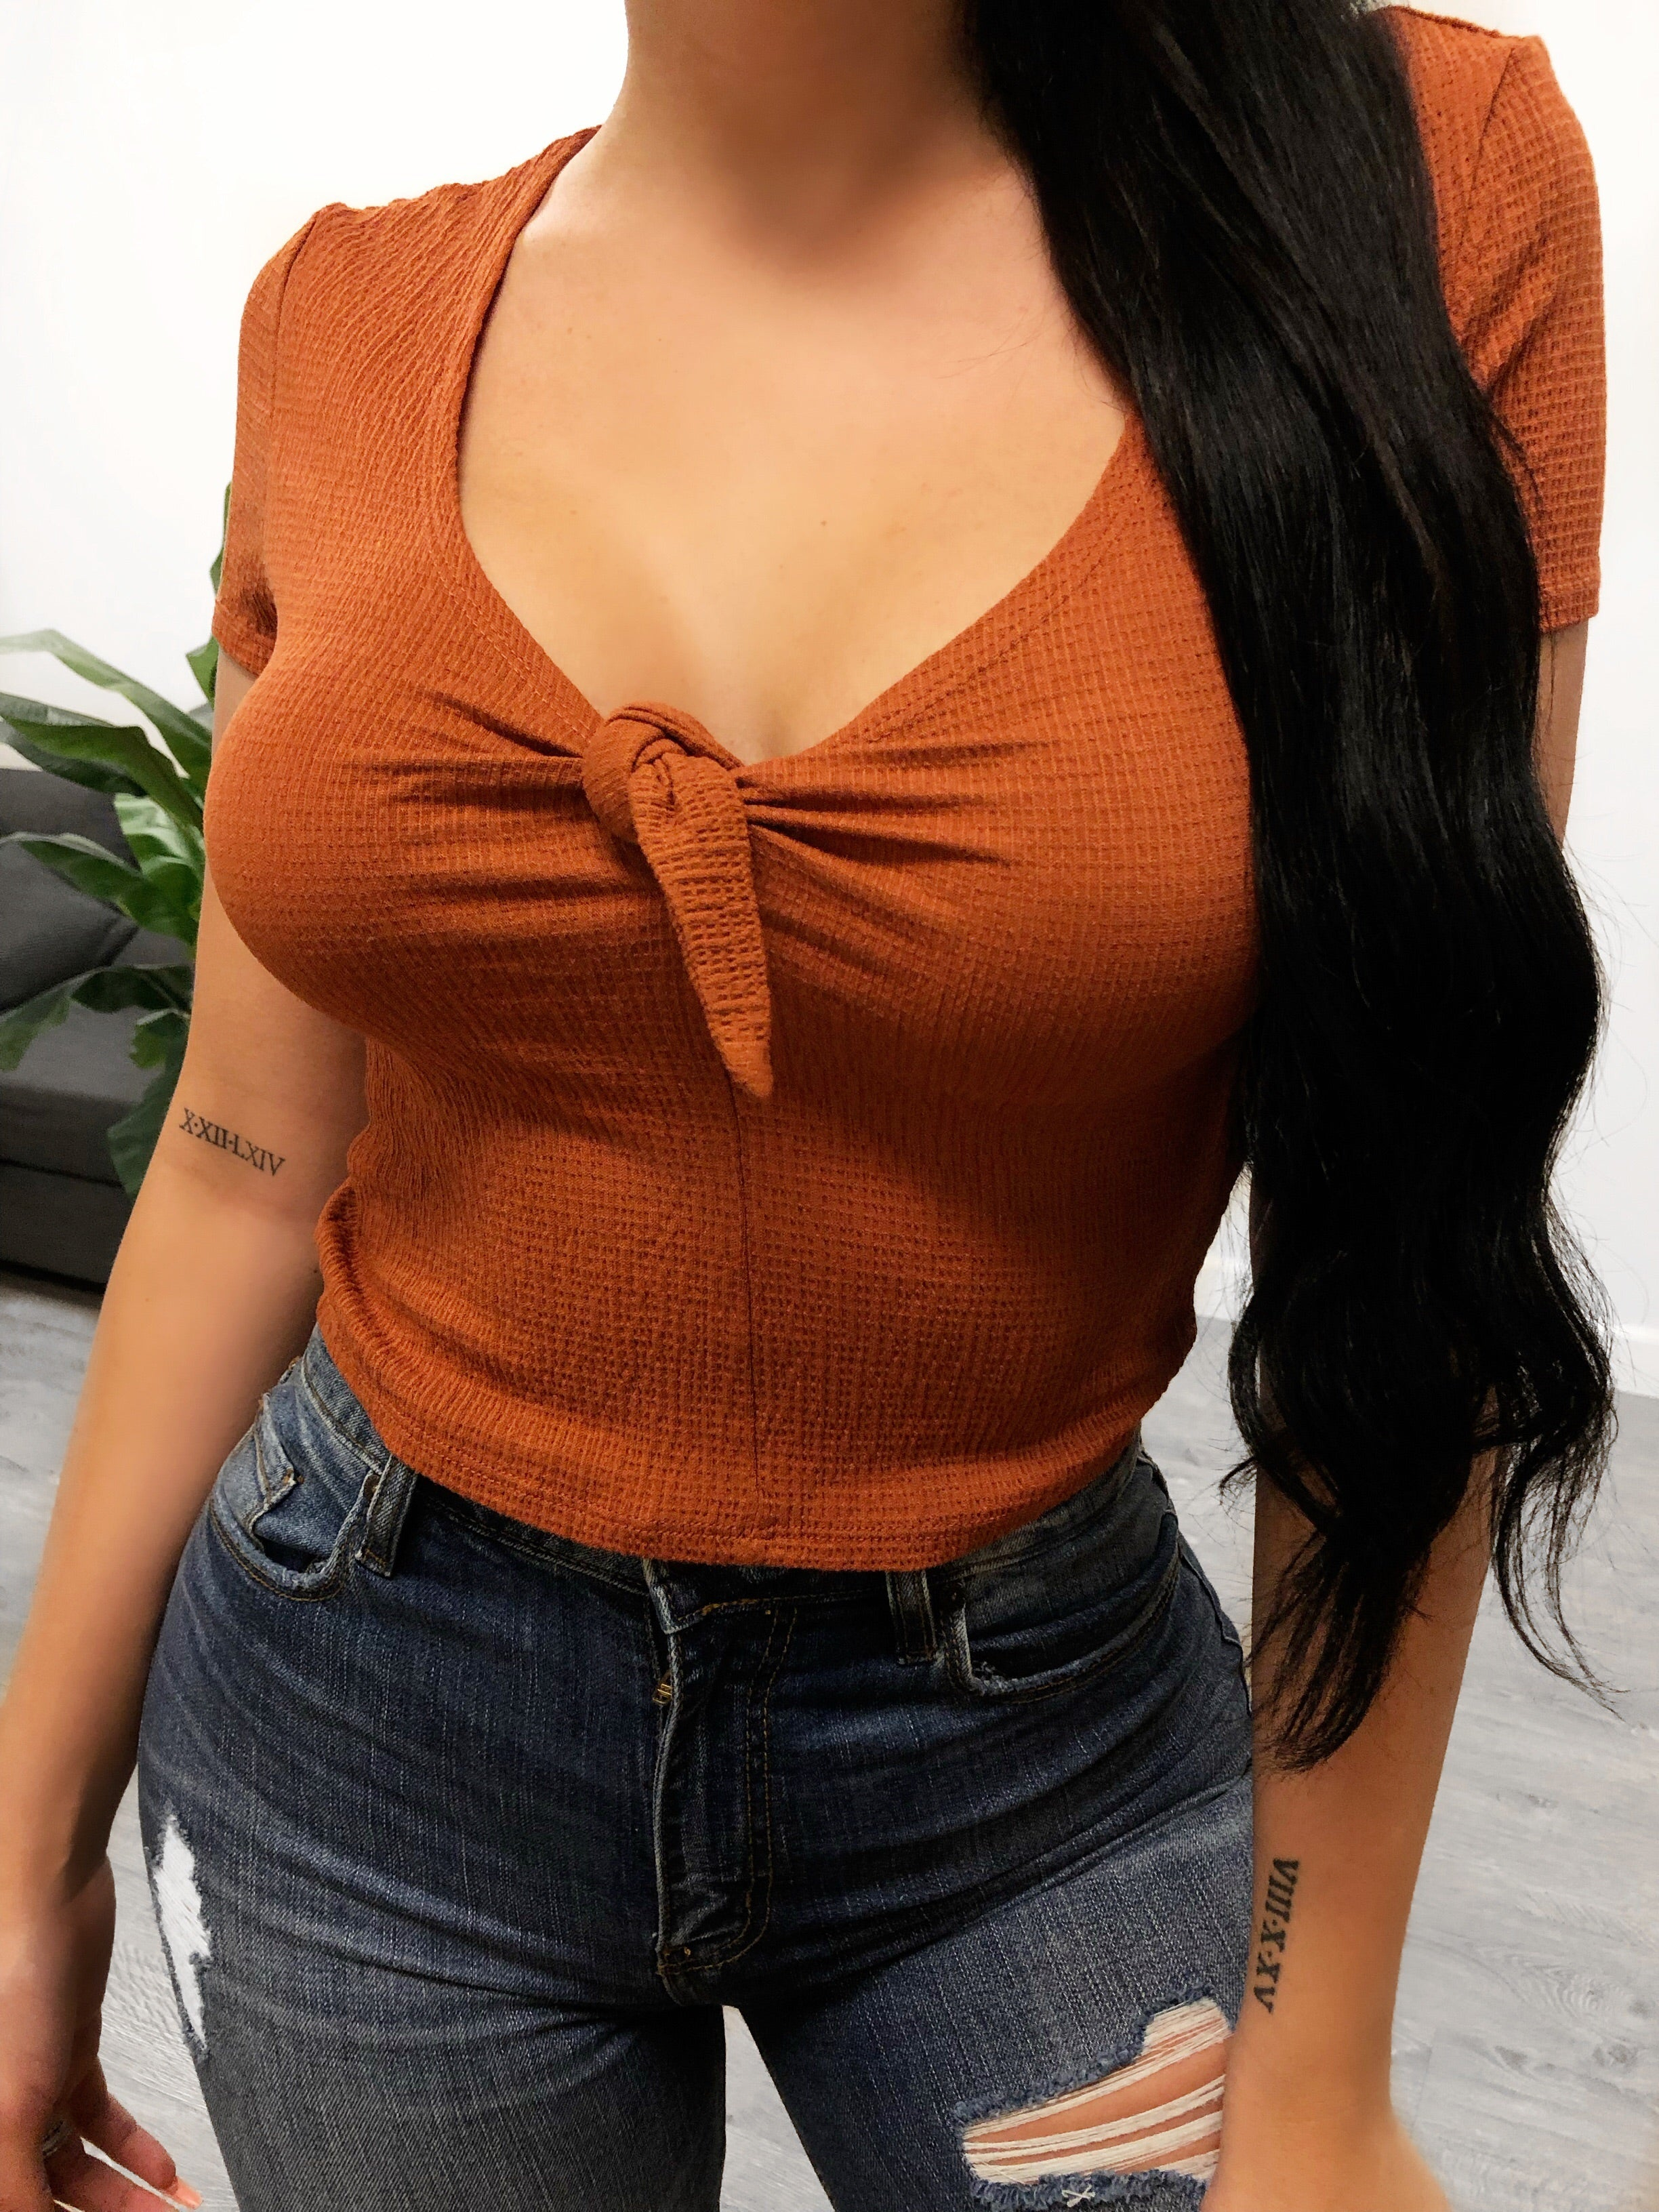 tight fitting t-shirt sleeves, tied up middle cleavage opening